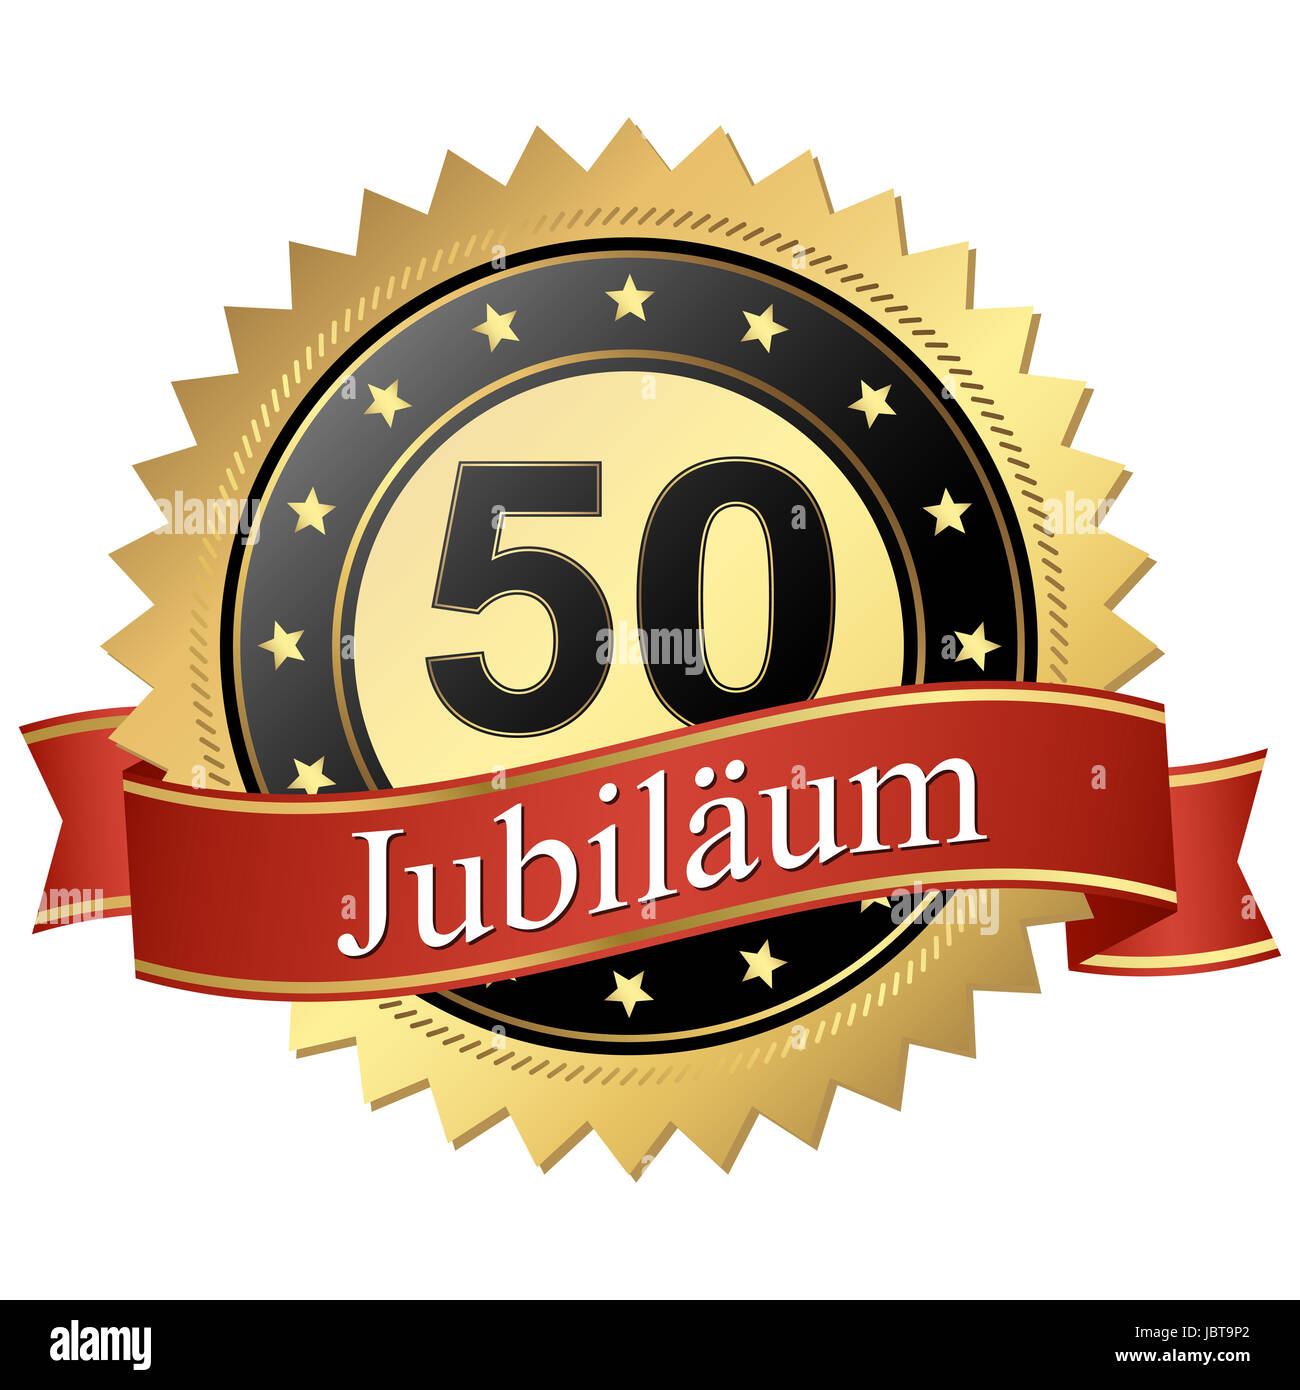 Jubilee button with banners german - 50 Jahre - Stock Image